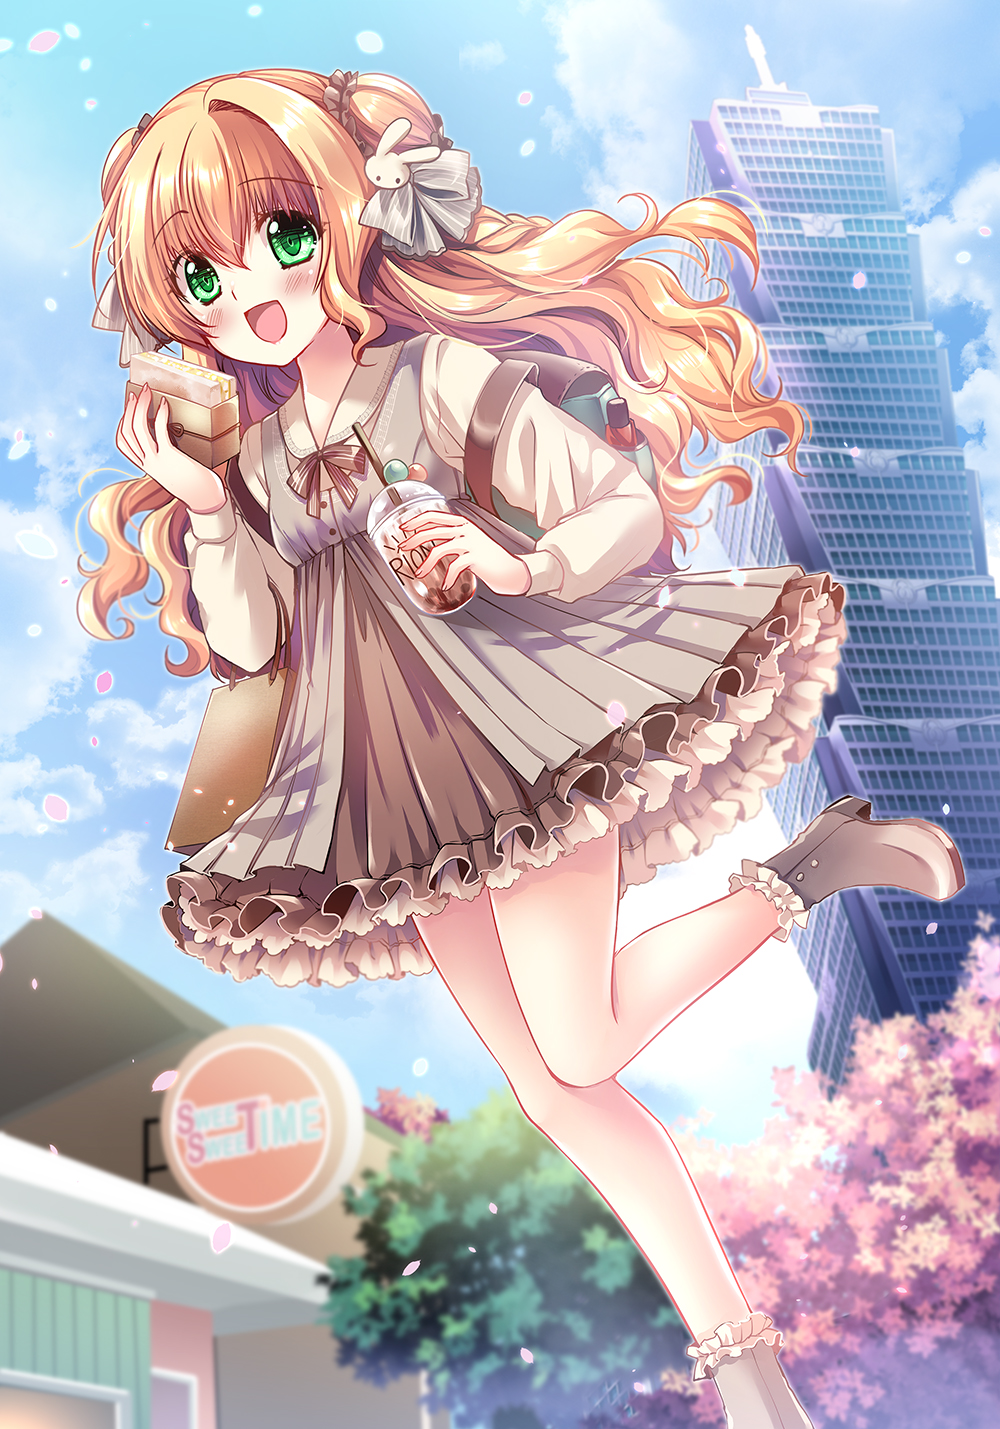 1girl blonde_hair blue_sky boots bow brown_bow brown_footwear brown_skirt bubble_tea building clouds cloudy_sky collared_shirt commentary_request cup day disposable_cup dress drinking_straw food frilled_boots frilled_footwear frilled_skirt frills green_eyes grey_dress high_heel_boots high_heels highres holding holding_cup holding_food long_hair long_sleeves original outdoors petals pleated_skirt sakurano_tsuyu sandwich shirt sign single_hair_intake skirt sky skyscraper sleeveless sleeveless_dress solo standing standing_on_one_leg striped striped_bow tree very_long_hair wavy_hair white_shirt